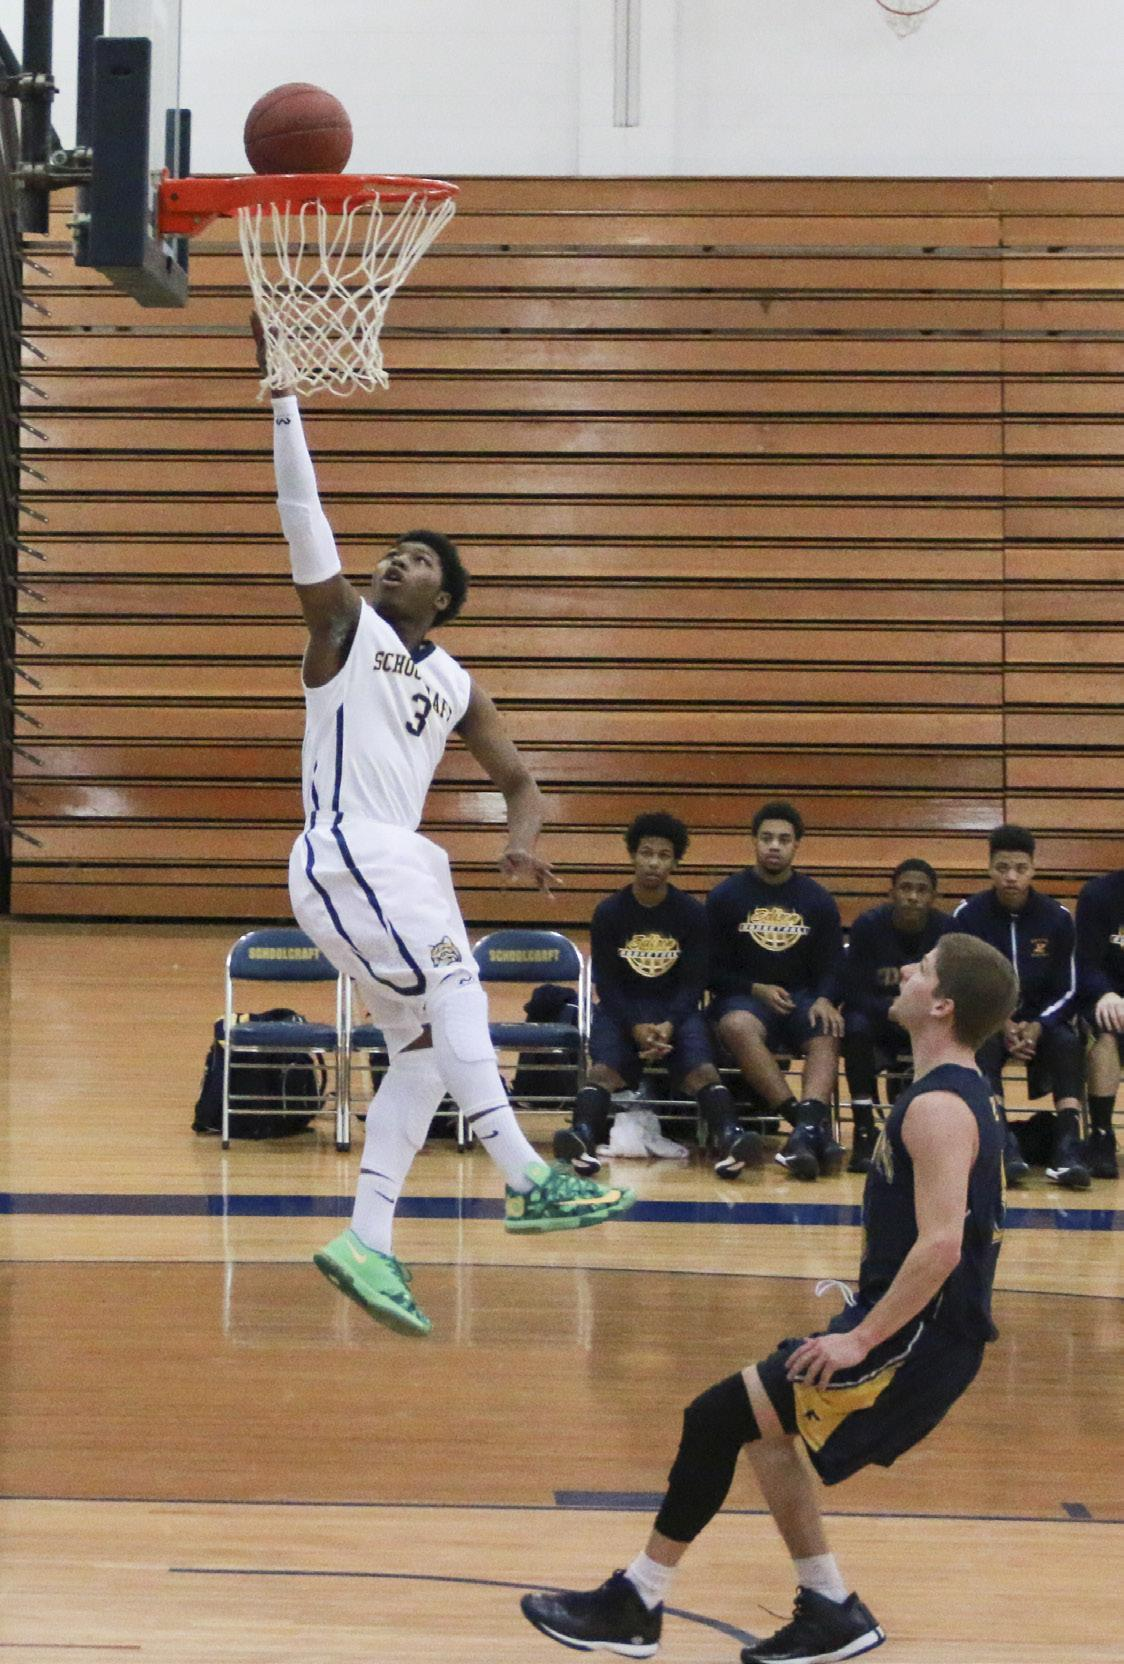 Freshman Guard Ronald Booth jumps high for a lay up against Edison State on Dec. 13. PHOTOS BY ANDREW RELLINGER  STAFF PHOTOGRAPHER